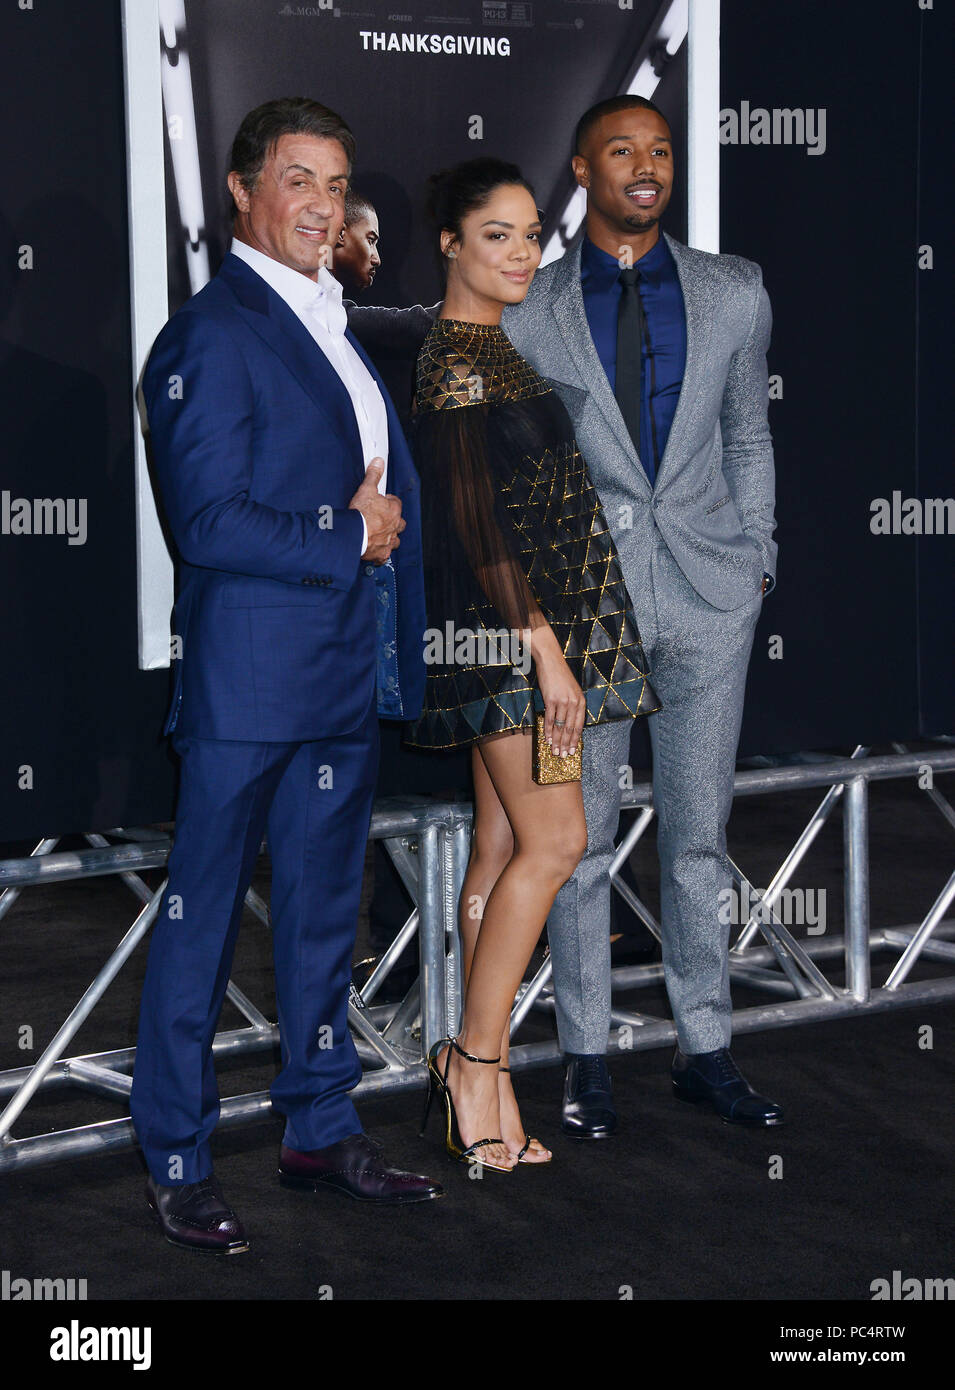 atributo Cornualles Muslo  Sylvester Stallone, Tessa Thompson, Michael B Jordan 143 at The Creed  Premiere at the Westwood Village Theatre in Los Angeles. November 19,  2015.a Sylvester Stallone, Tessa Thompson, Michael B Jordan 143 Event